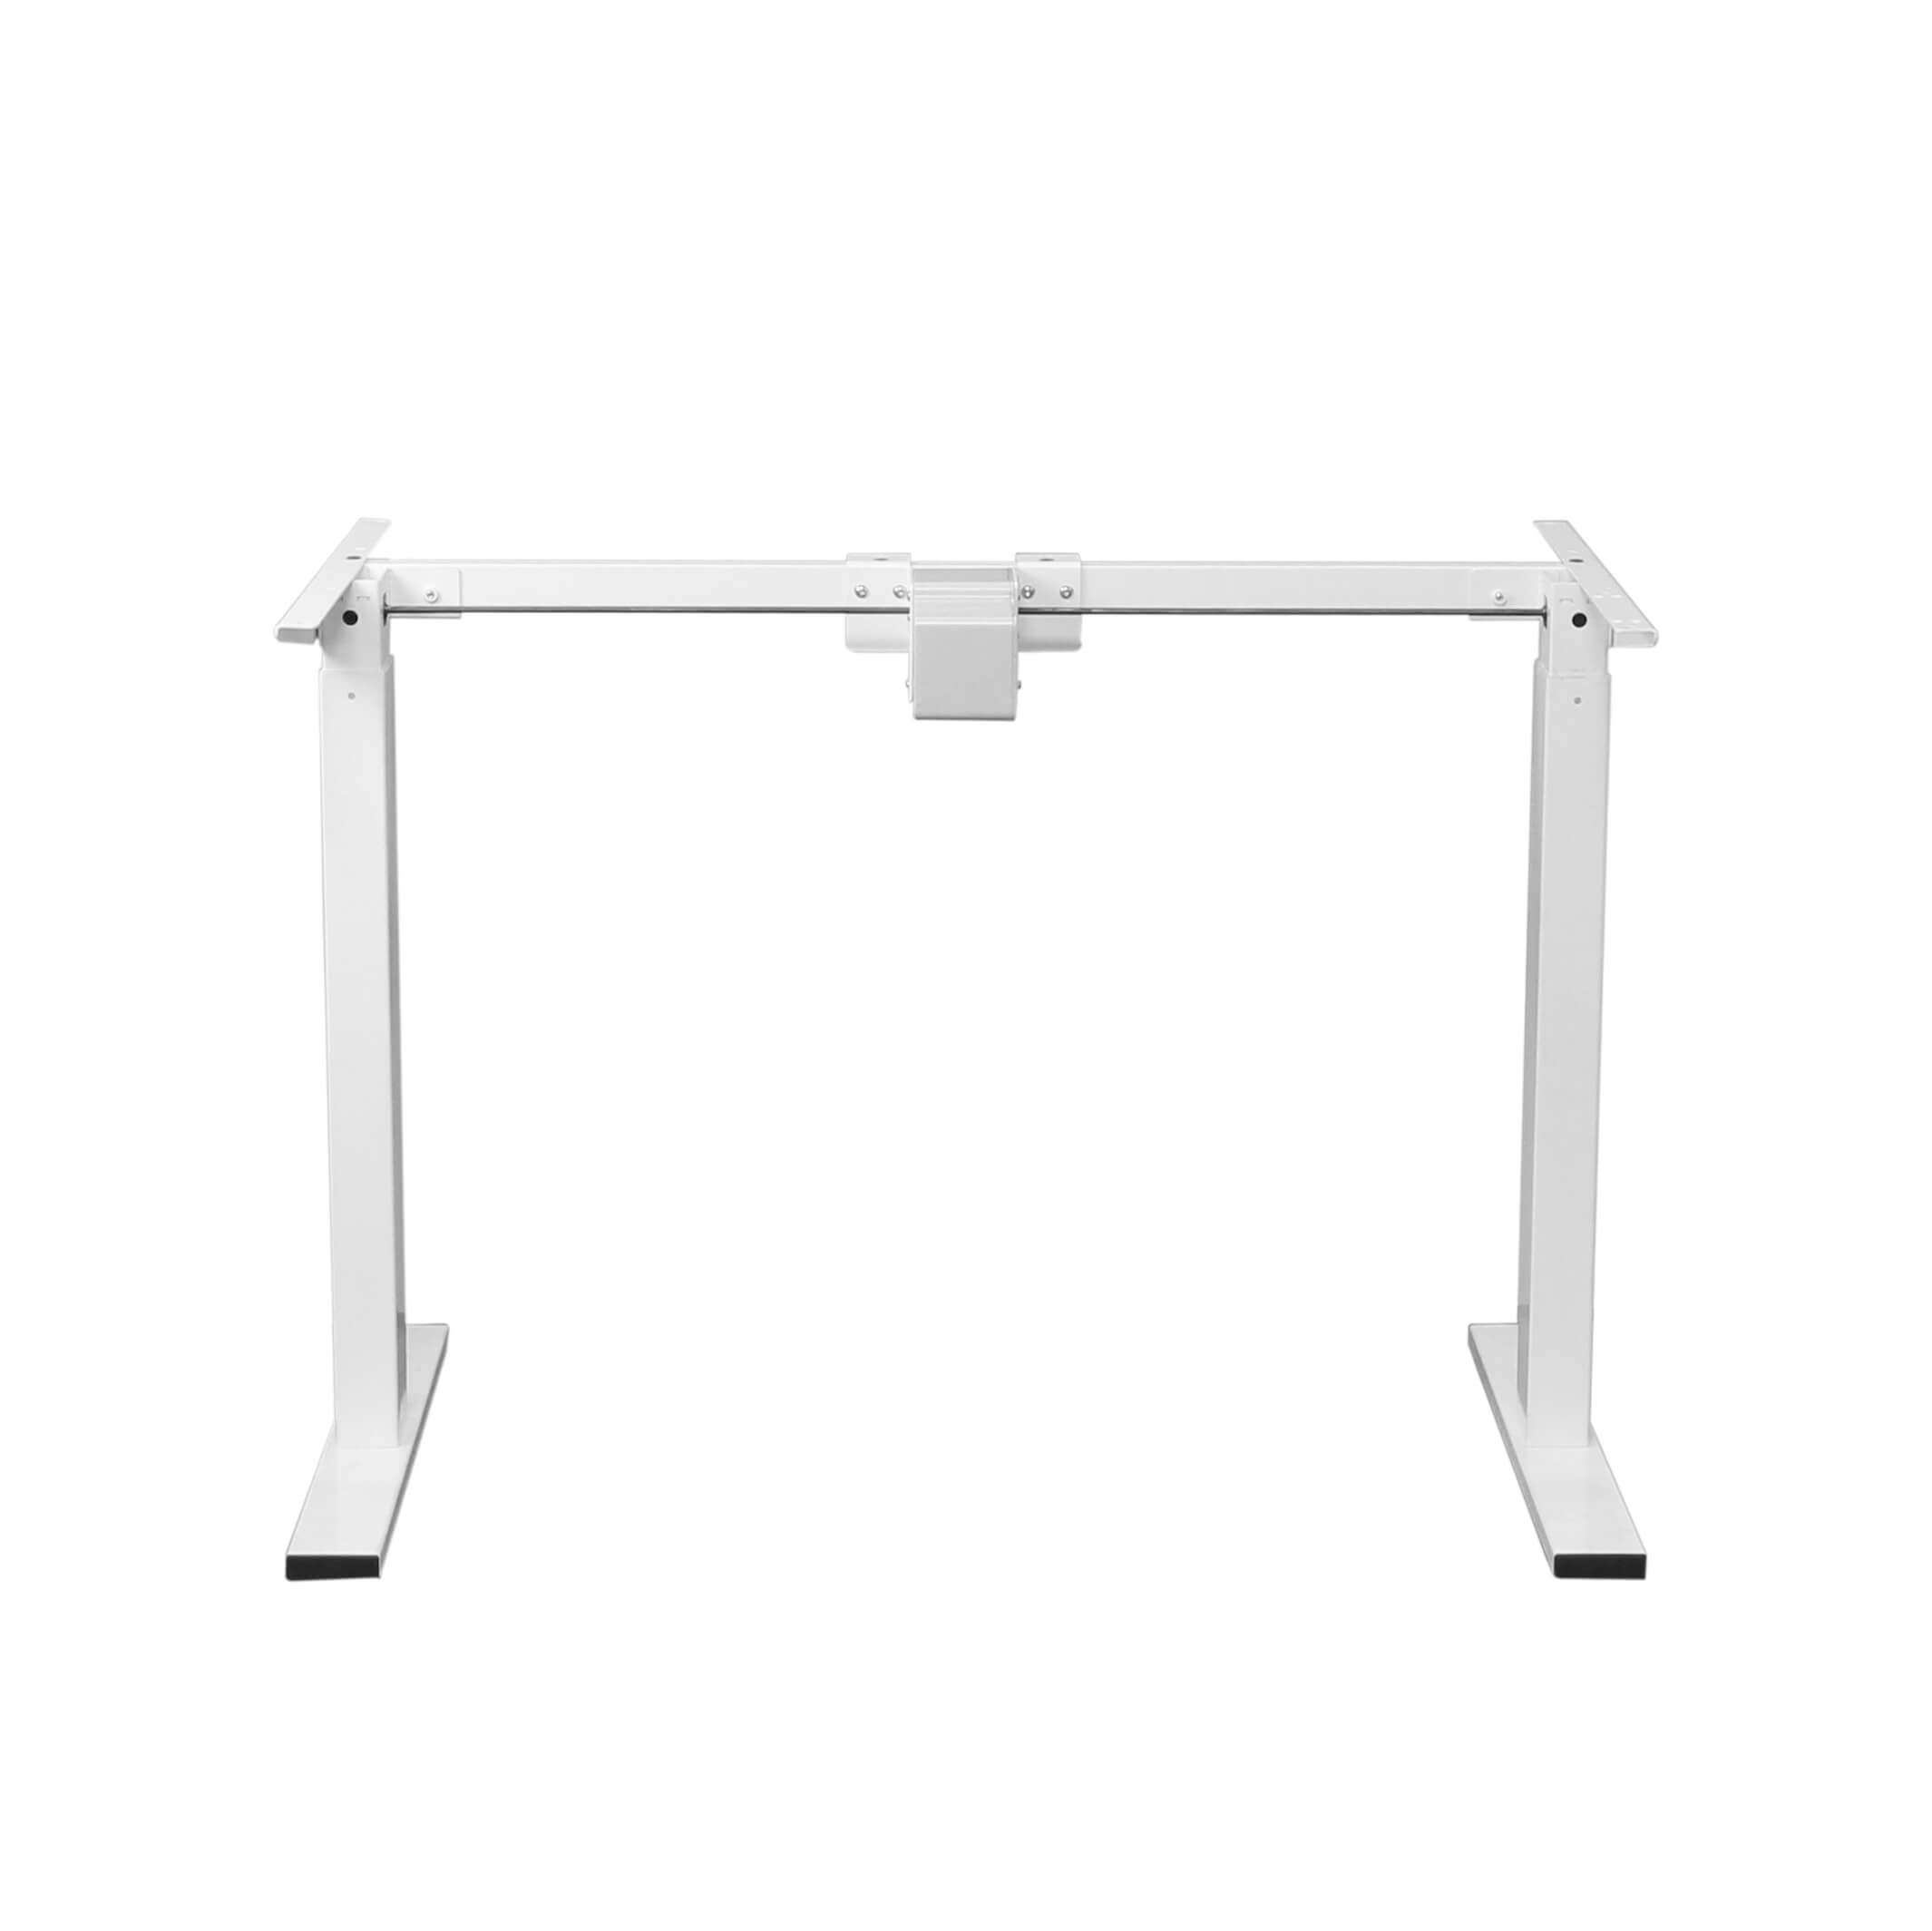 Single Motor Single Beam Multifunctional Electric Automatic Standing Desk